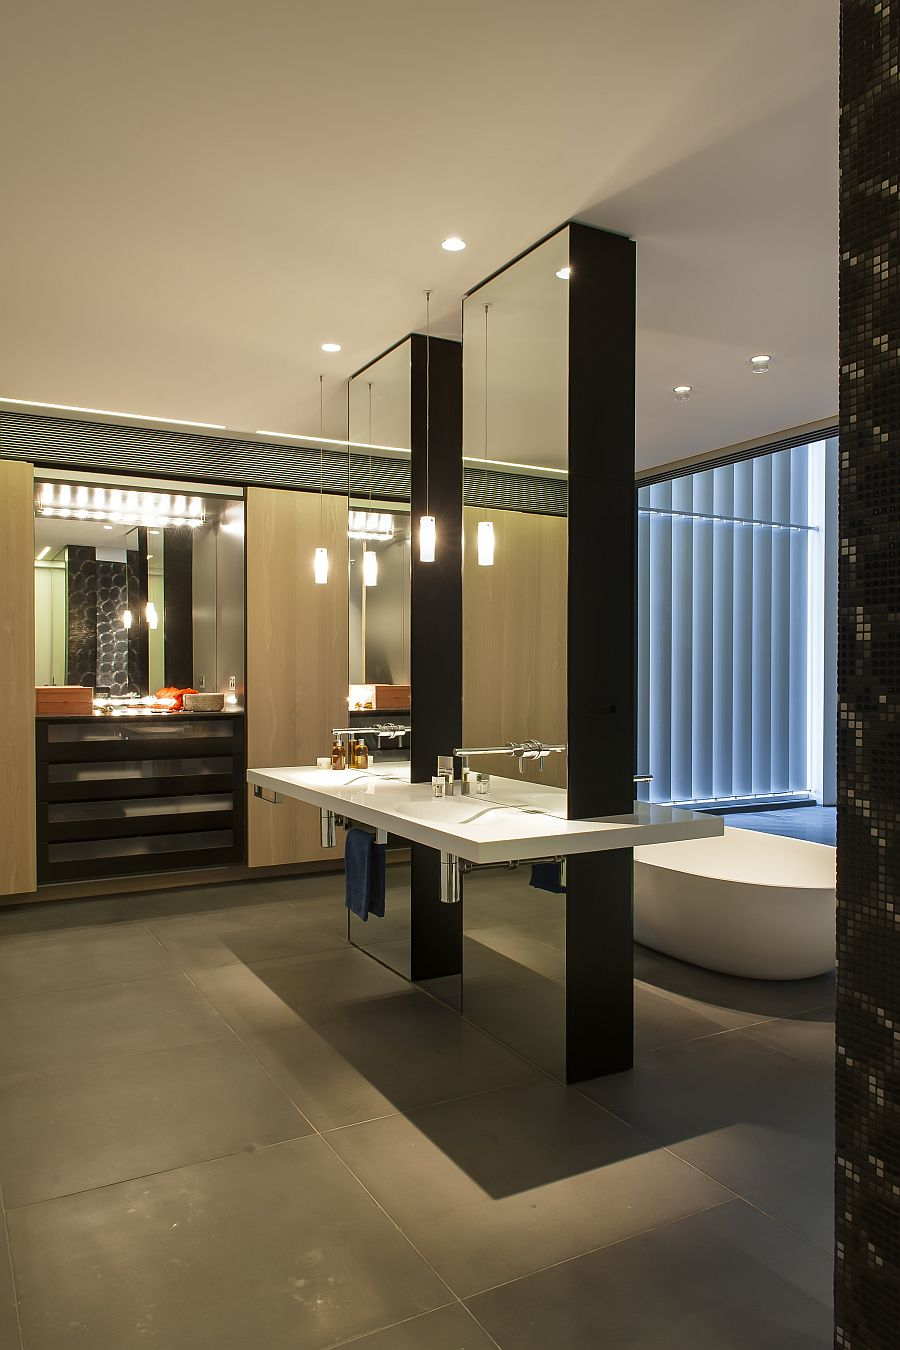 Hollywood styled make up lights and mirrors in the cabinets